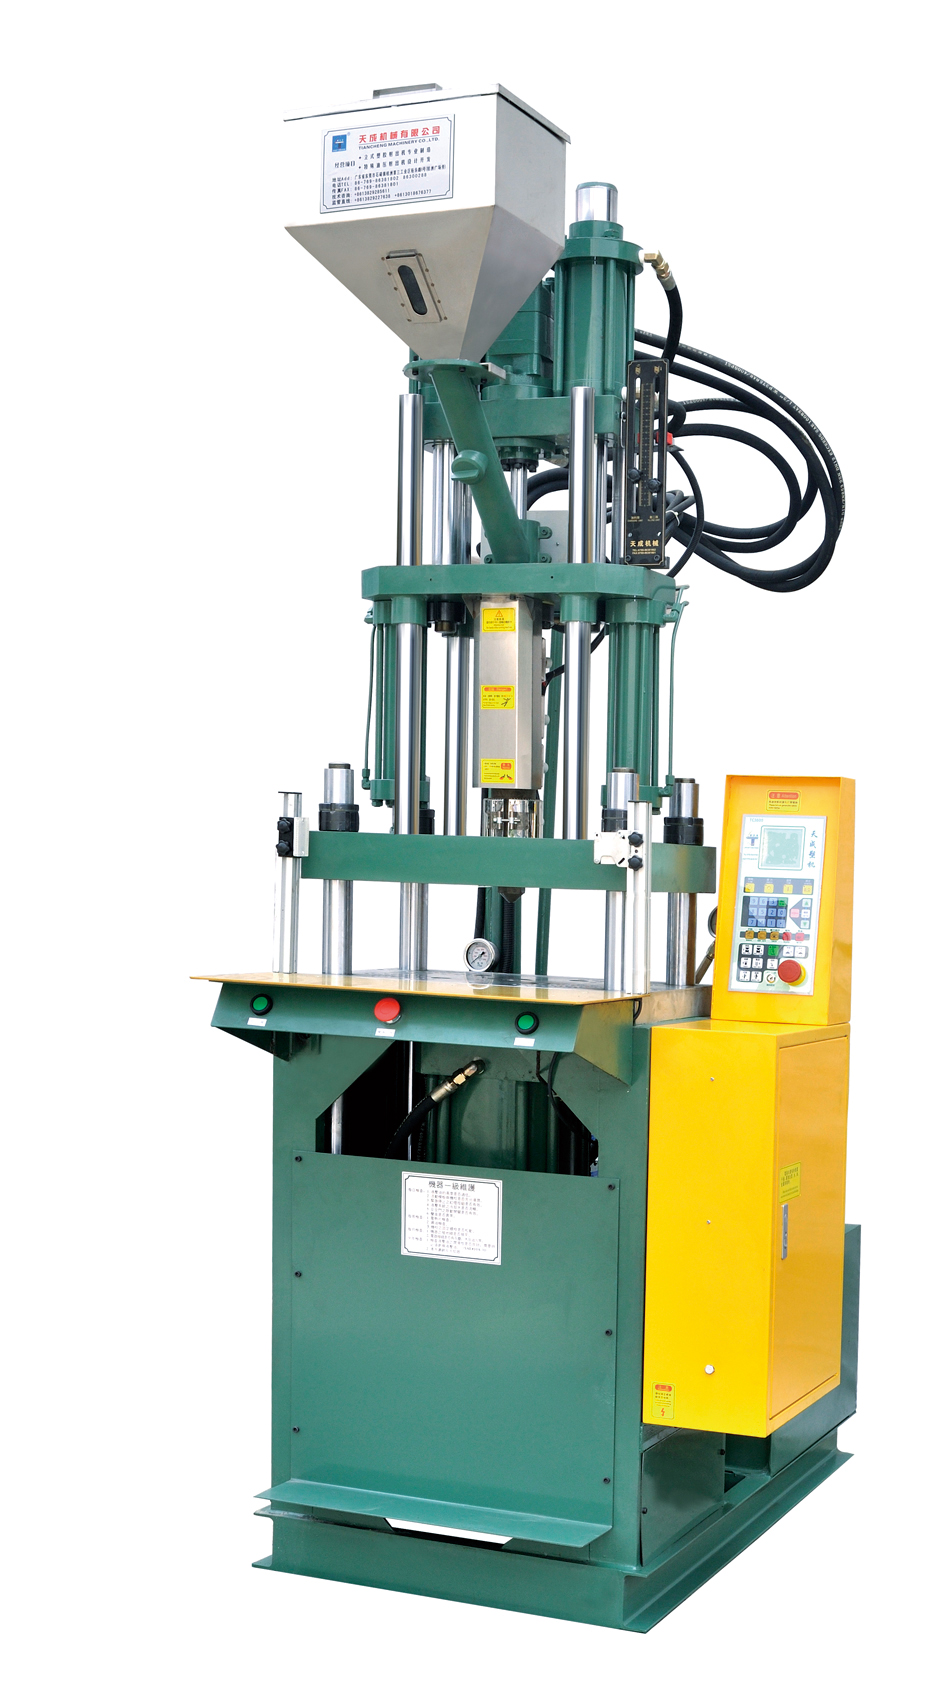 Vertical Plastic Mold Injection Molding Machine